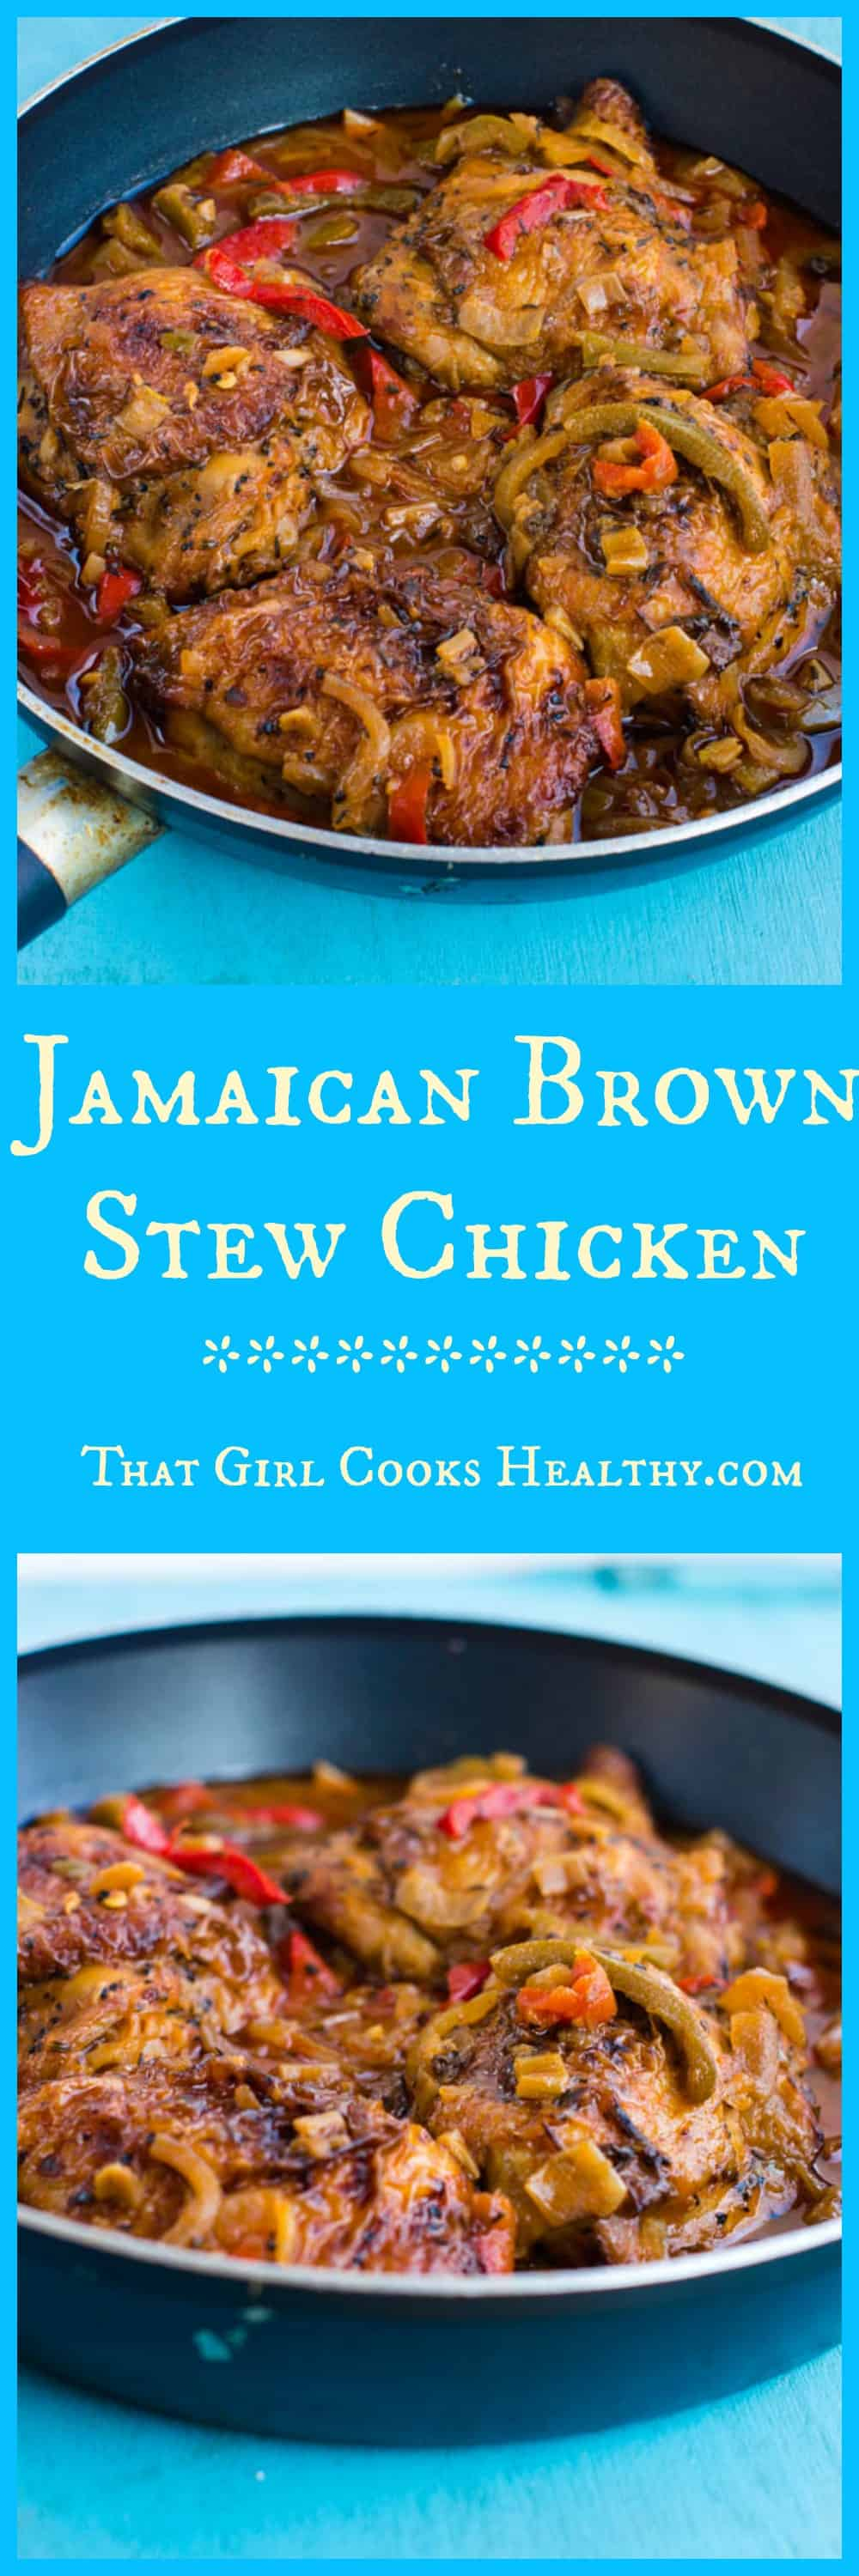 authentic jamaican brown stew chicken  that girl cooks